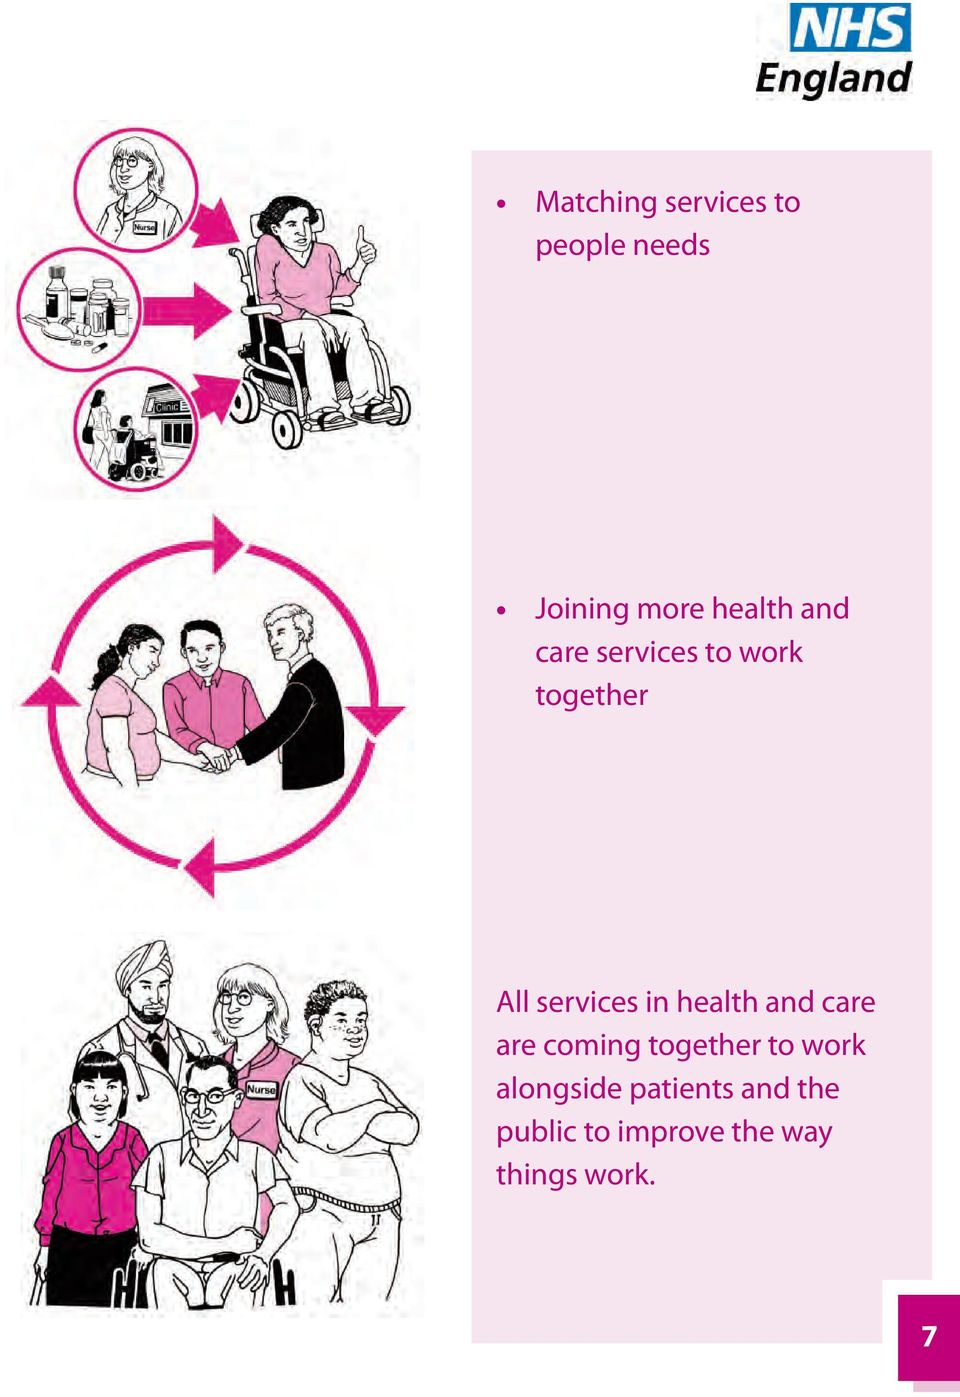 health and care are coming together to work alongside